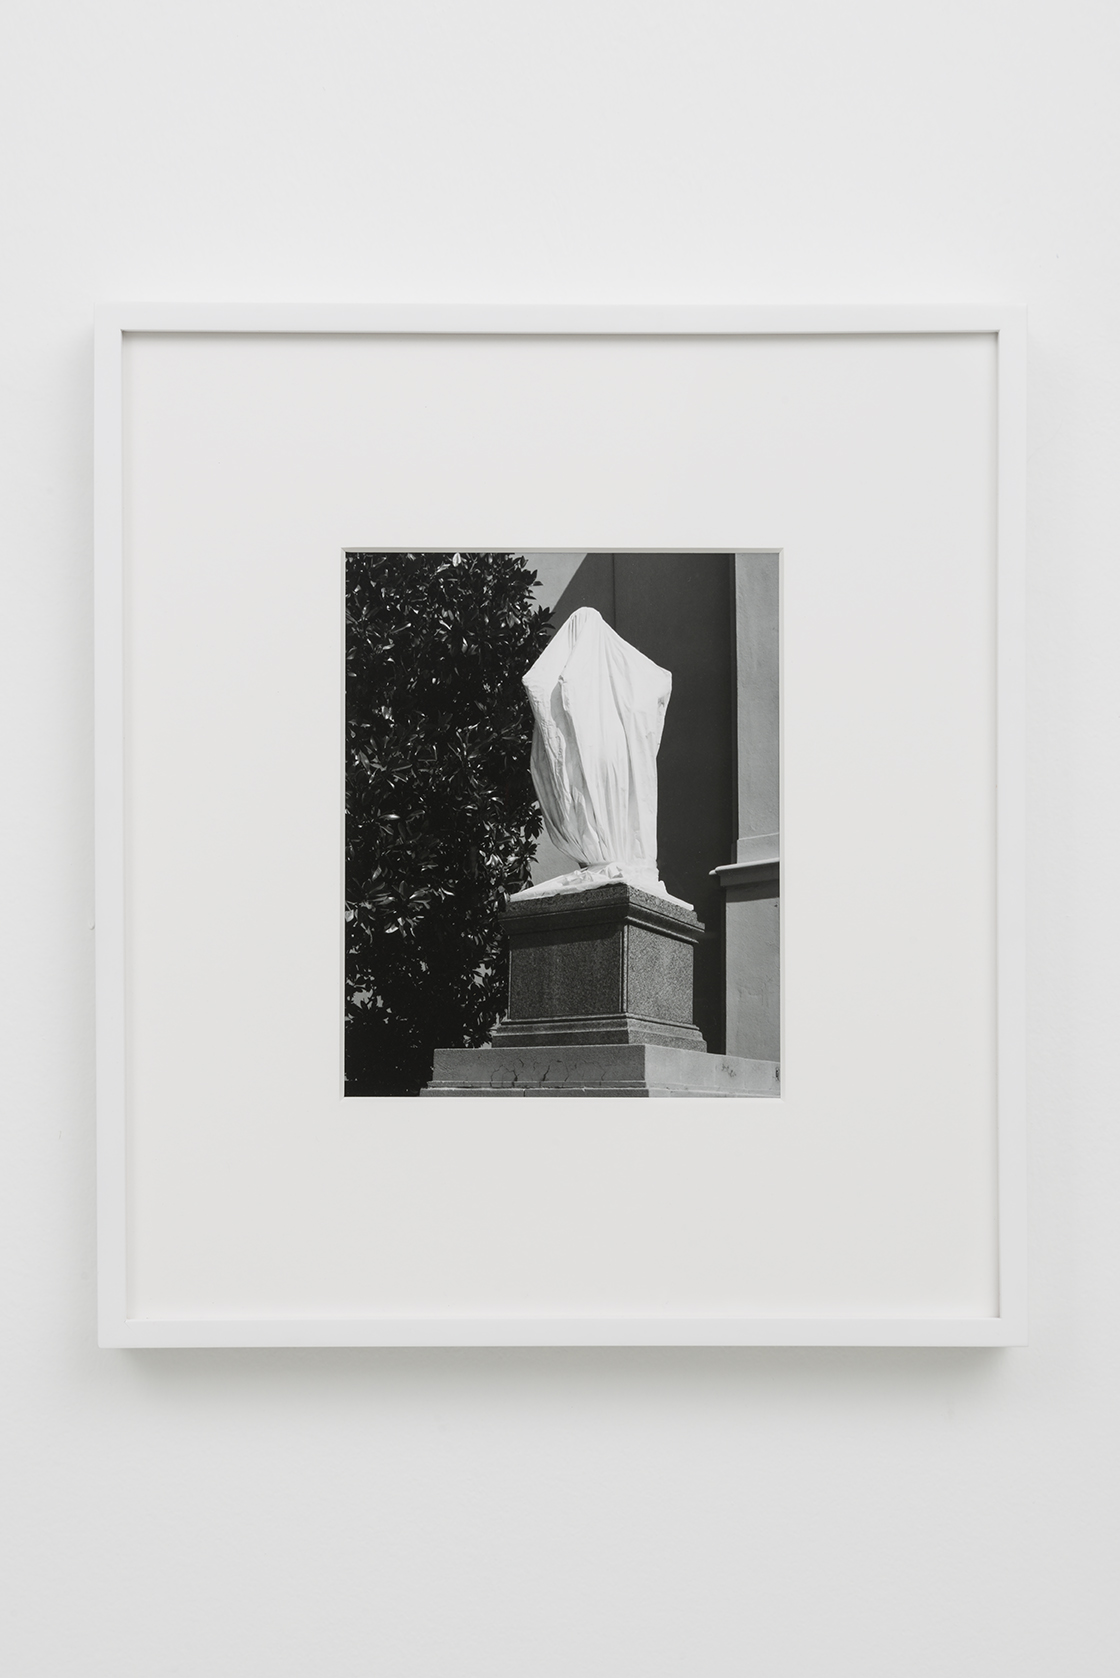 "Devon Oder - Monument II - Archival Inkjet Print - 8 x 10"" Photo, 16 x 18"" Matted and Framed"